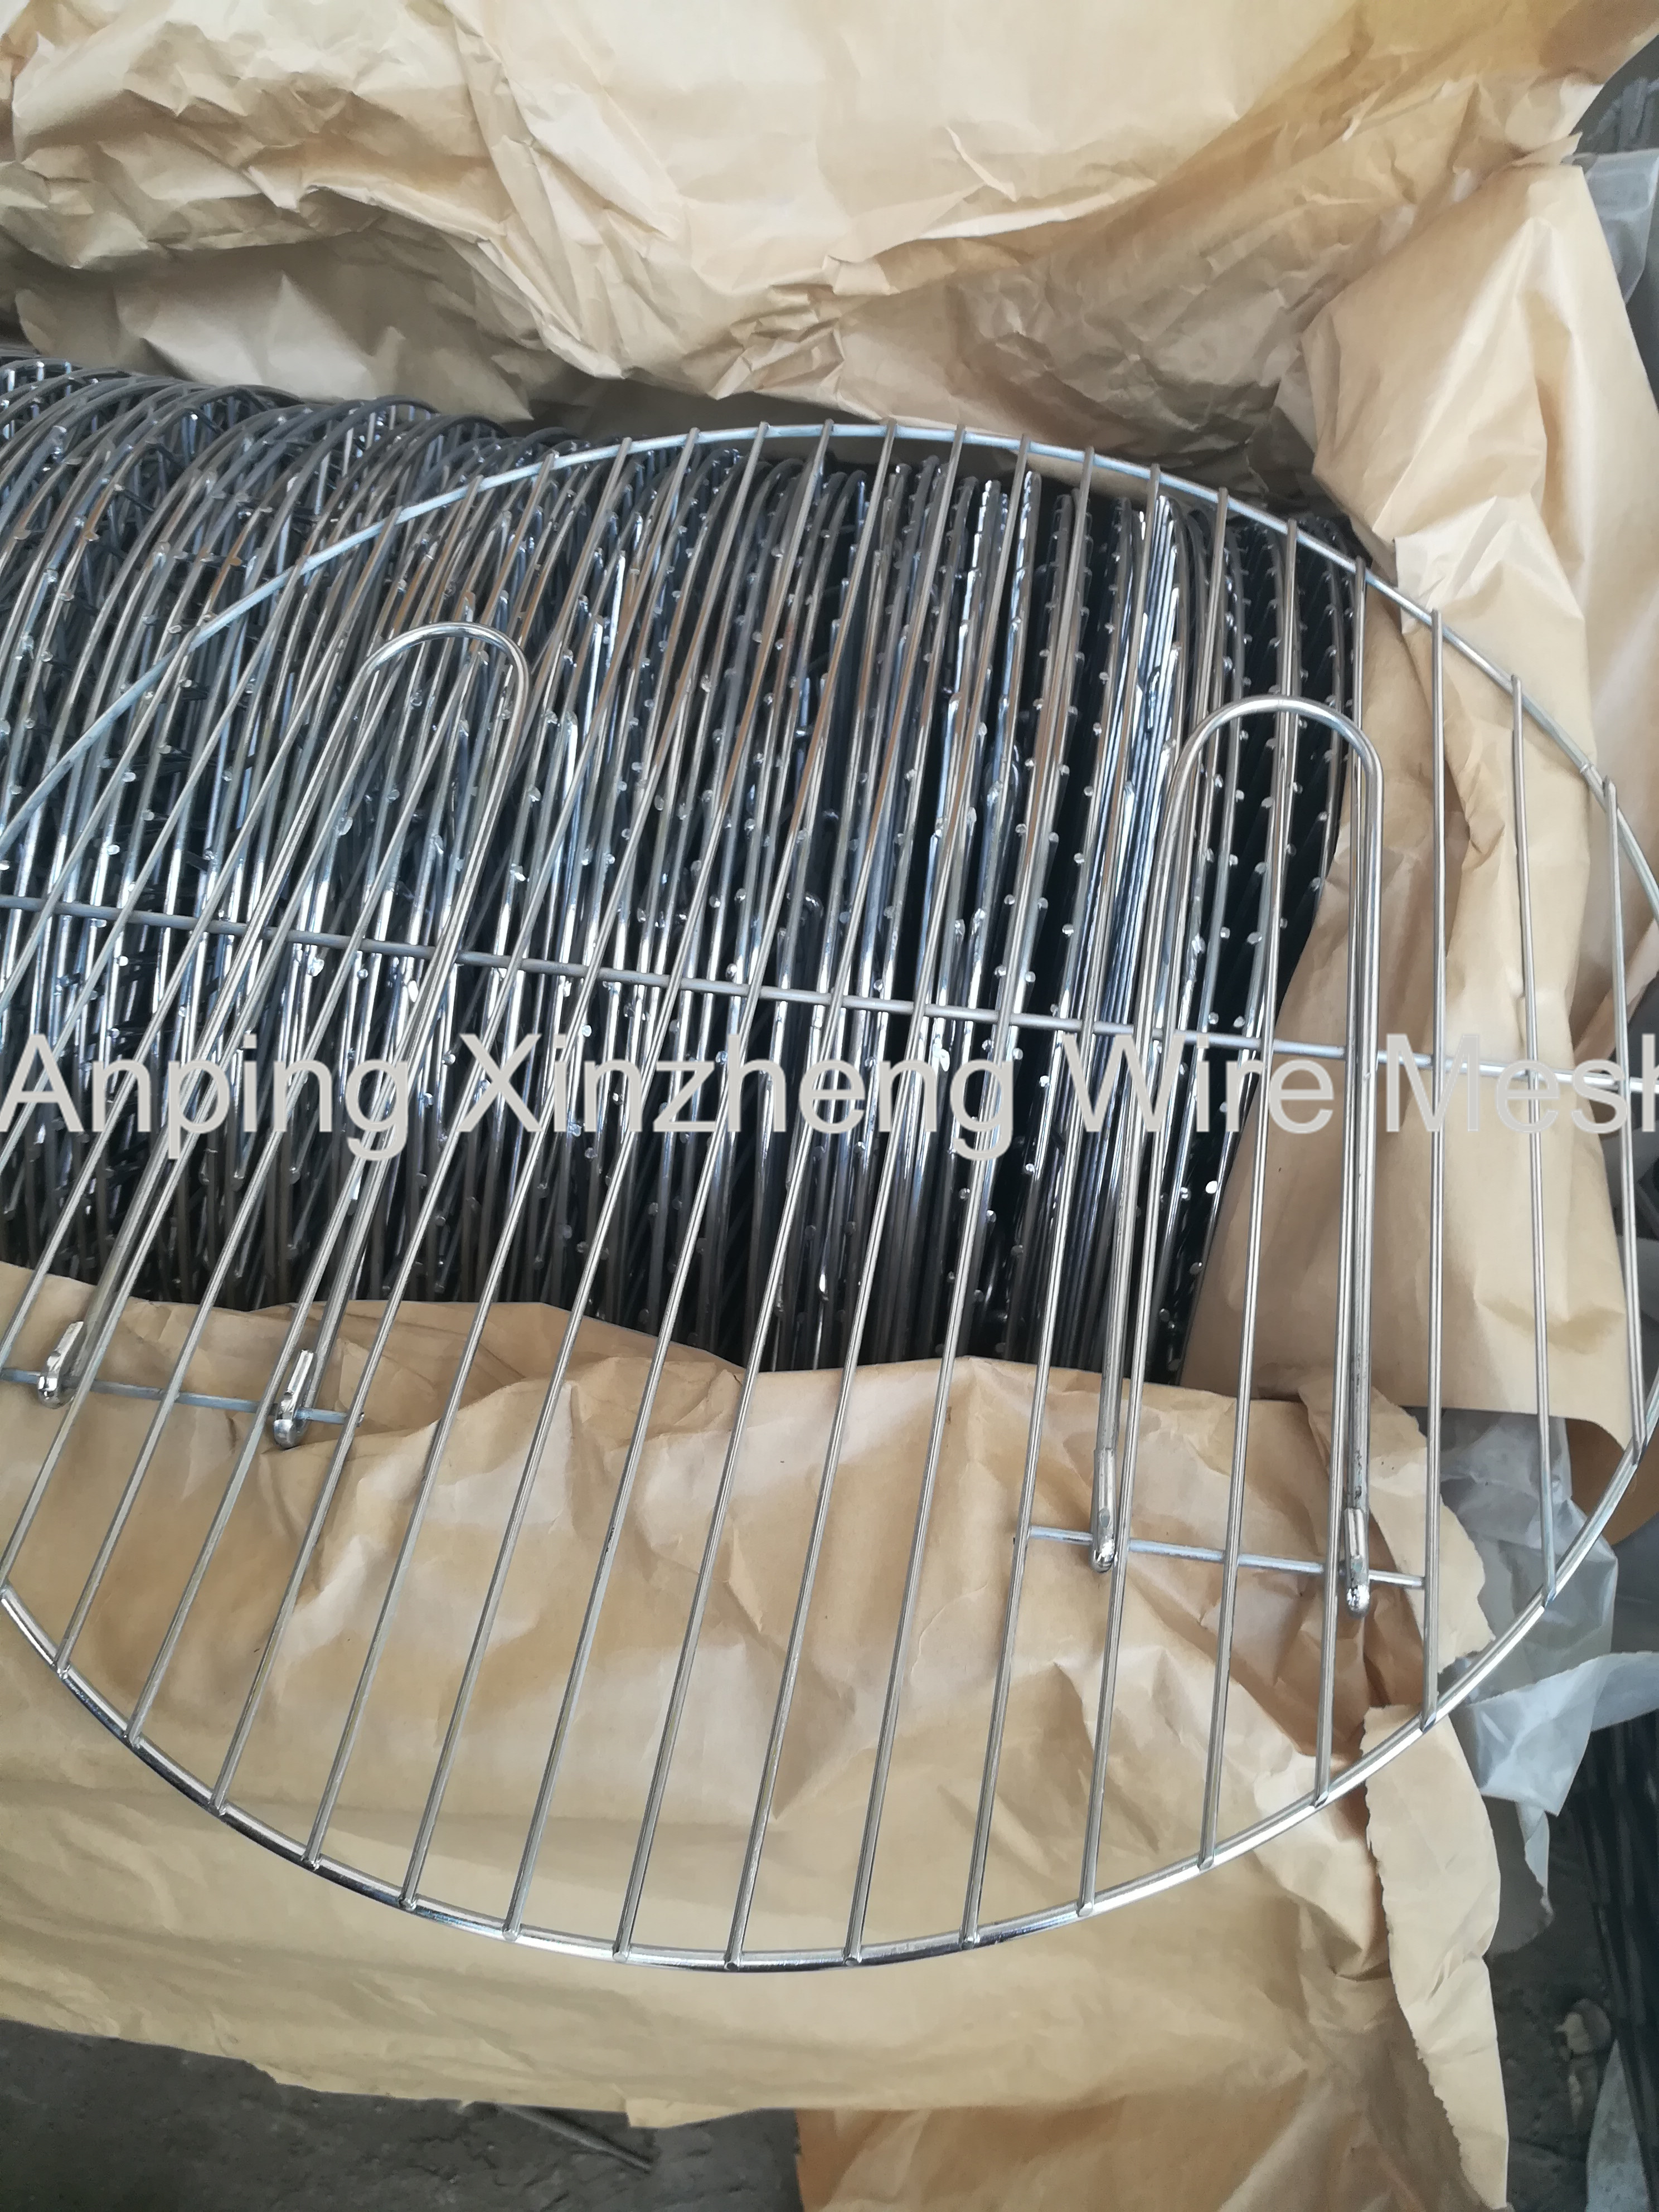 Welded Barbecue Mesh